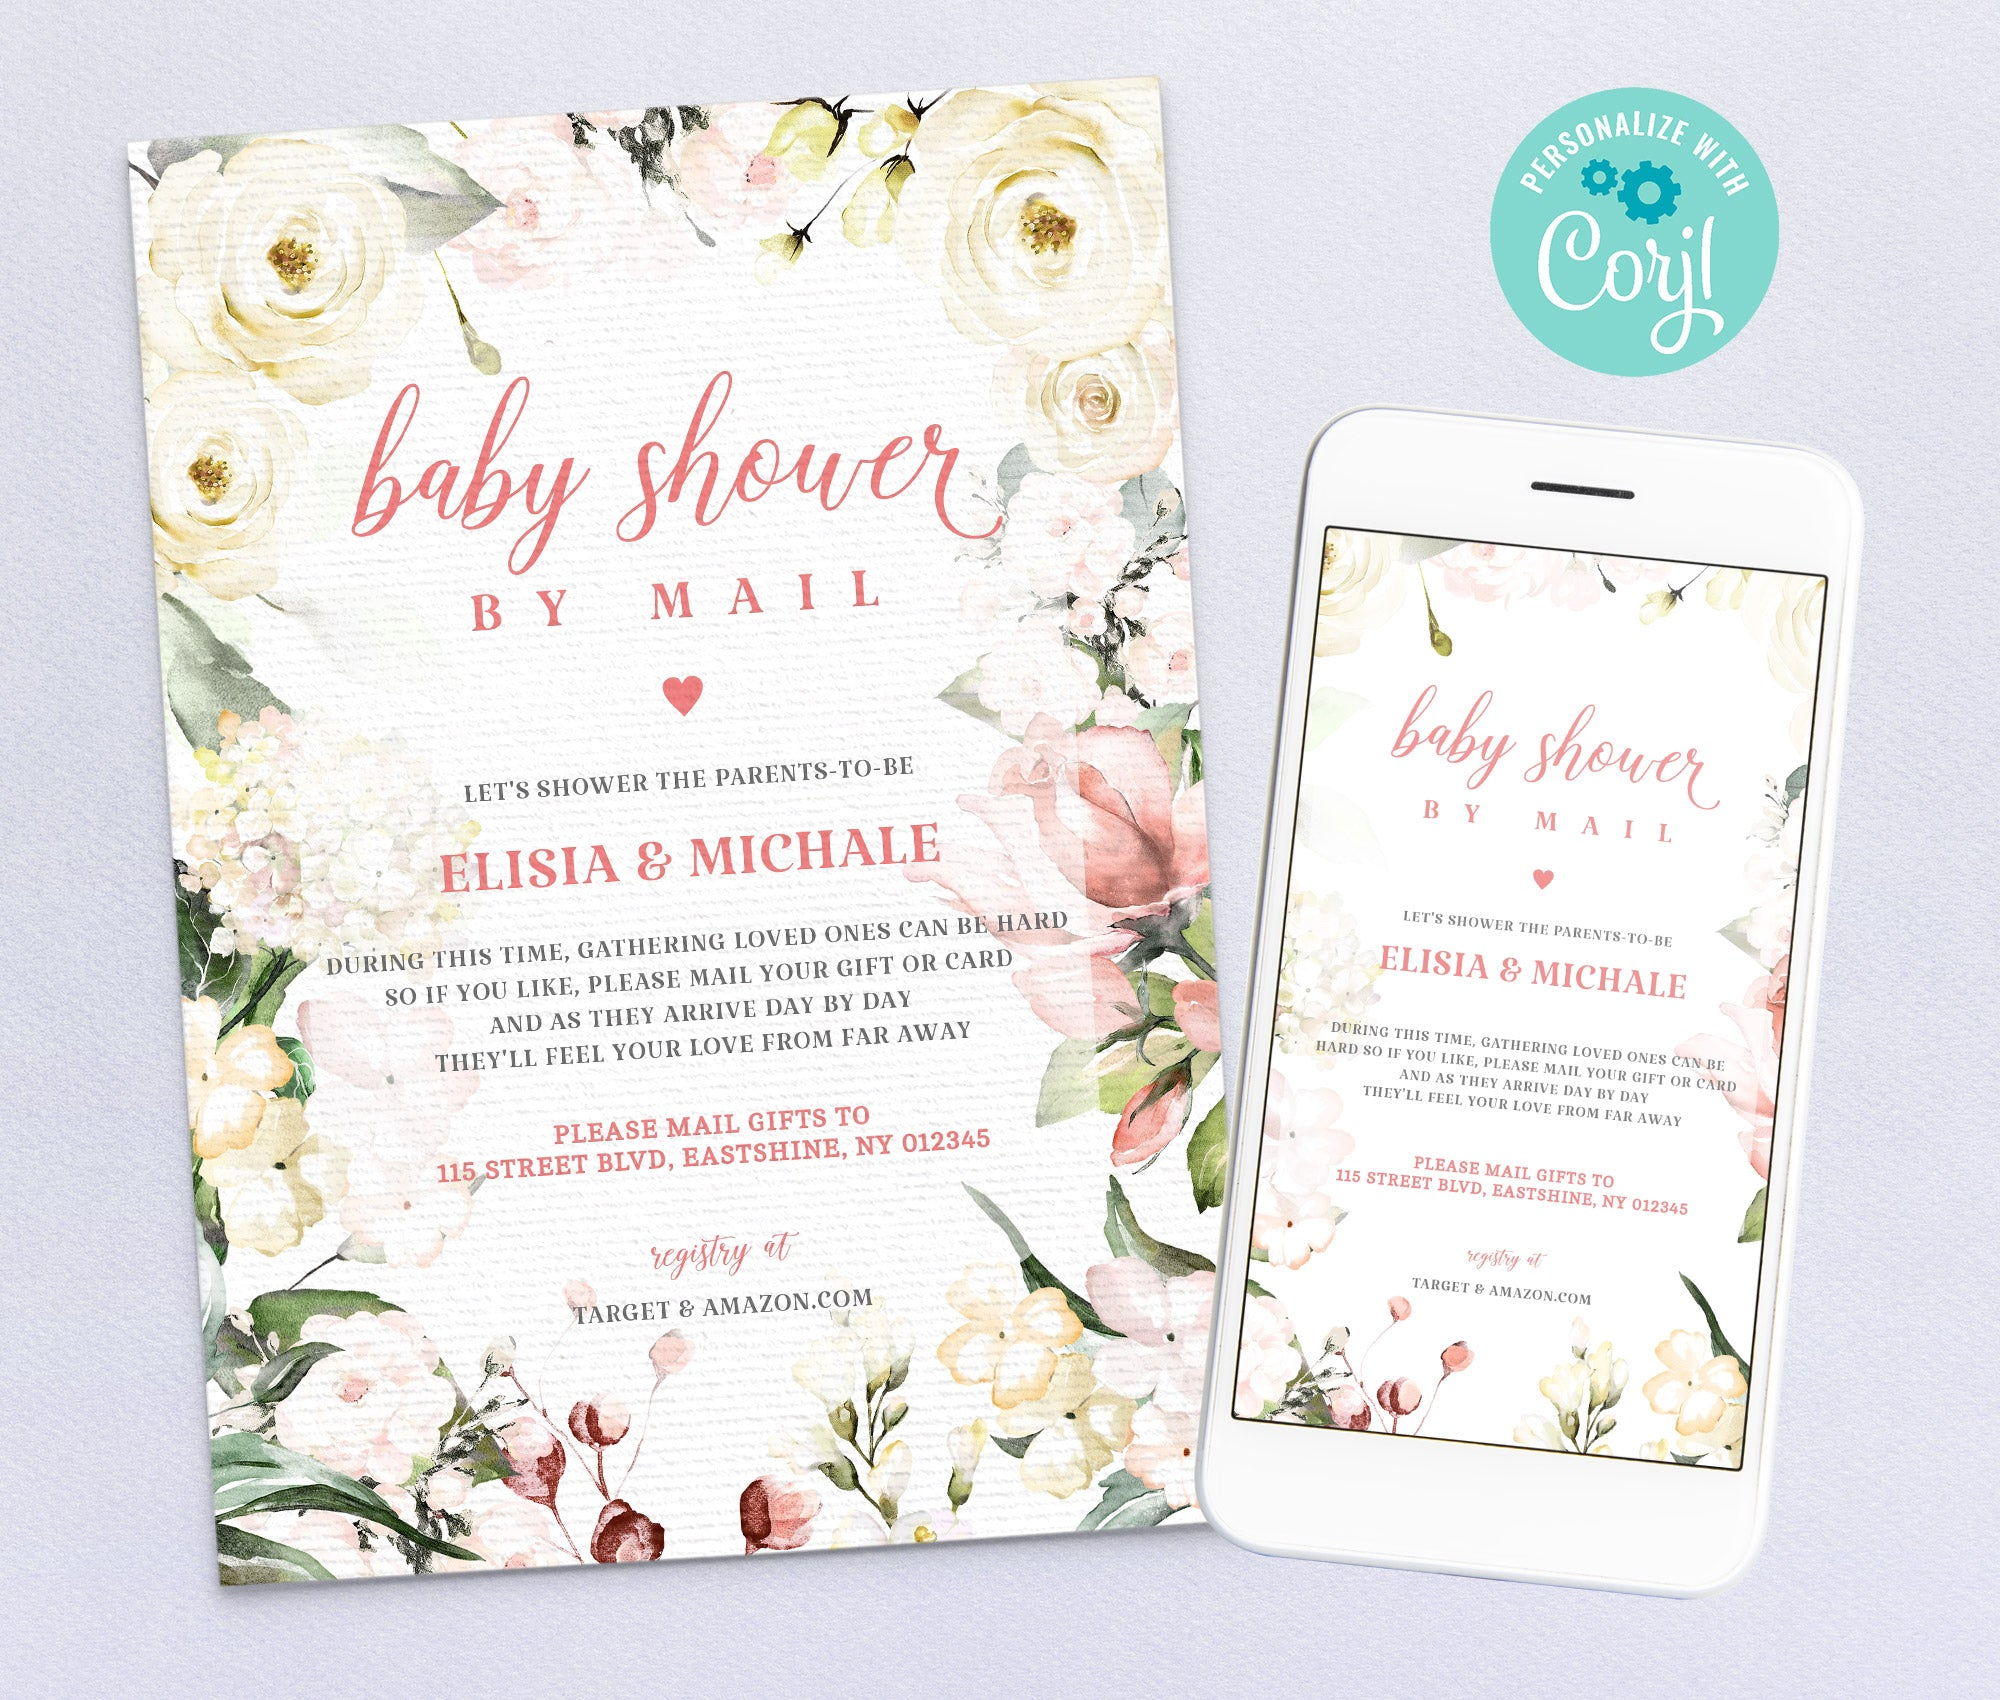 Baby Shower by Mail Invitation 5